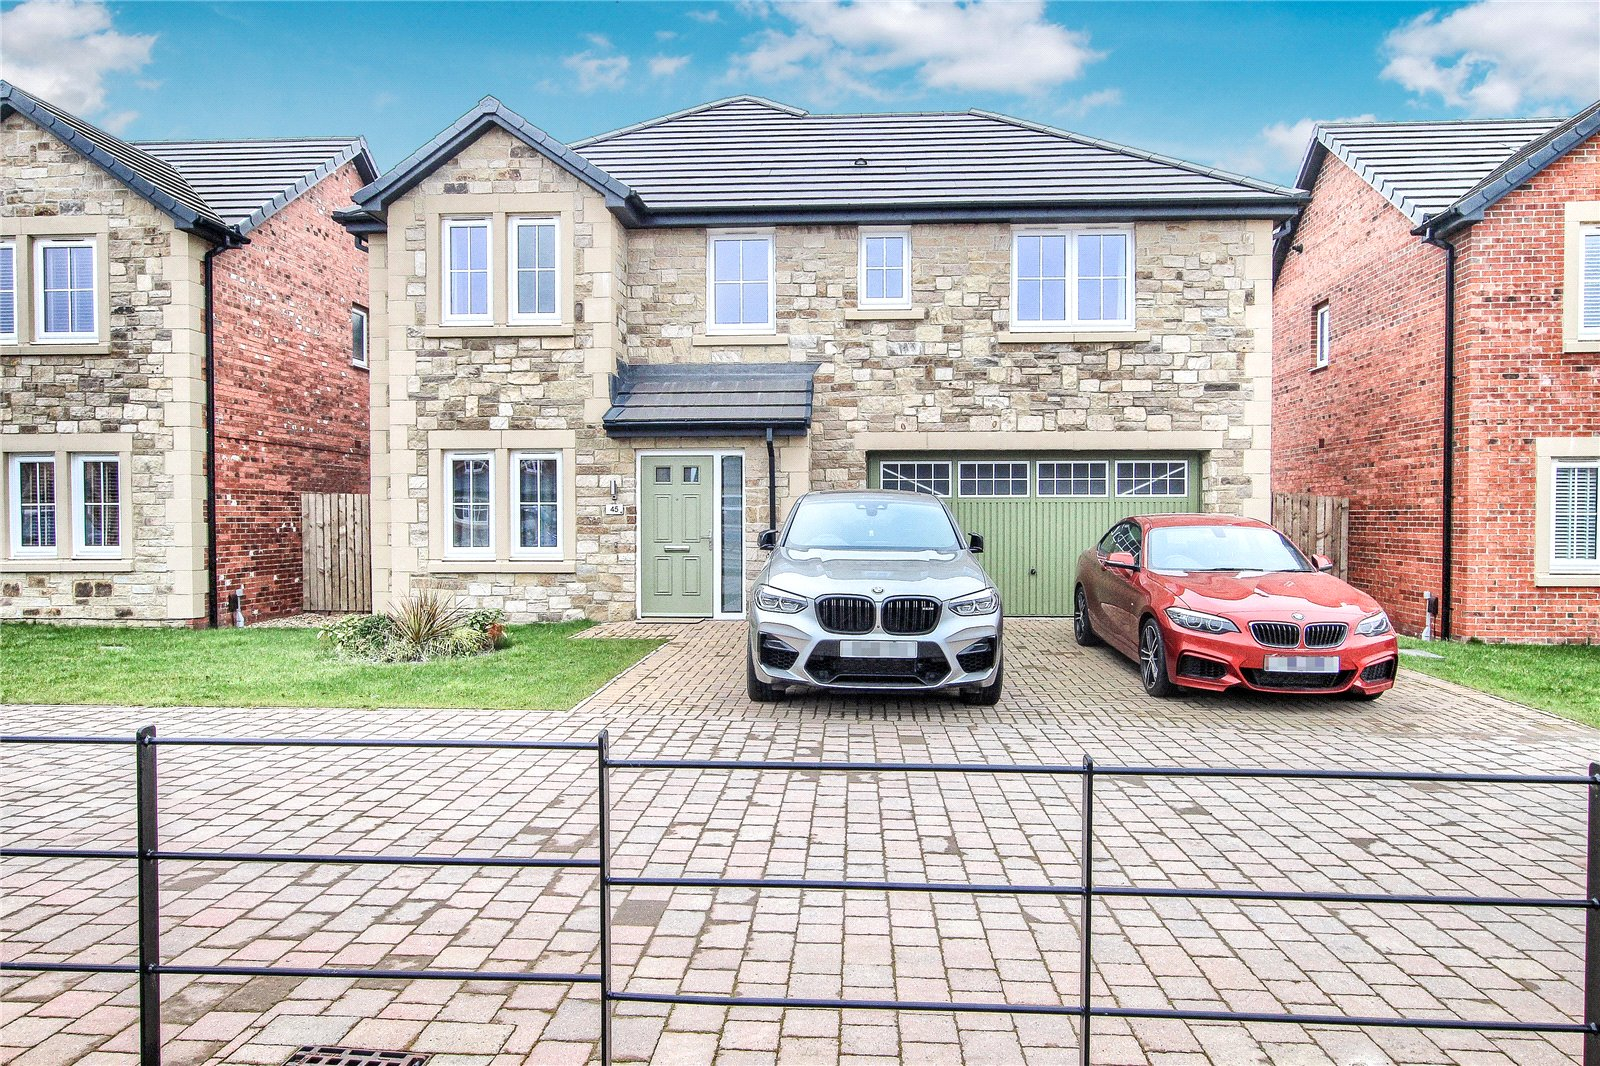 4 bed house for sale in Bloomfield Drive, Wynyard 1